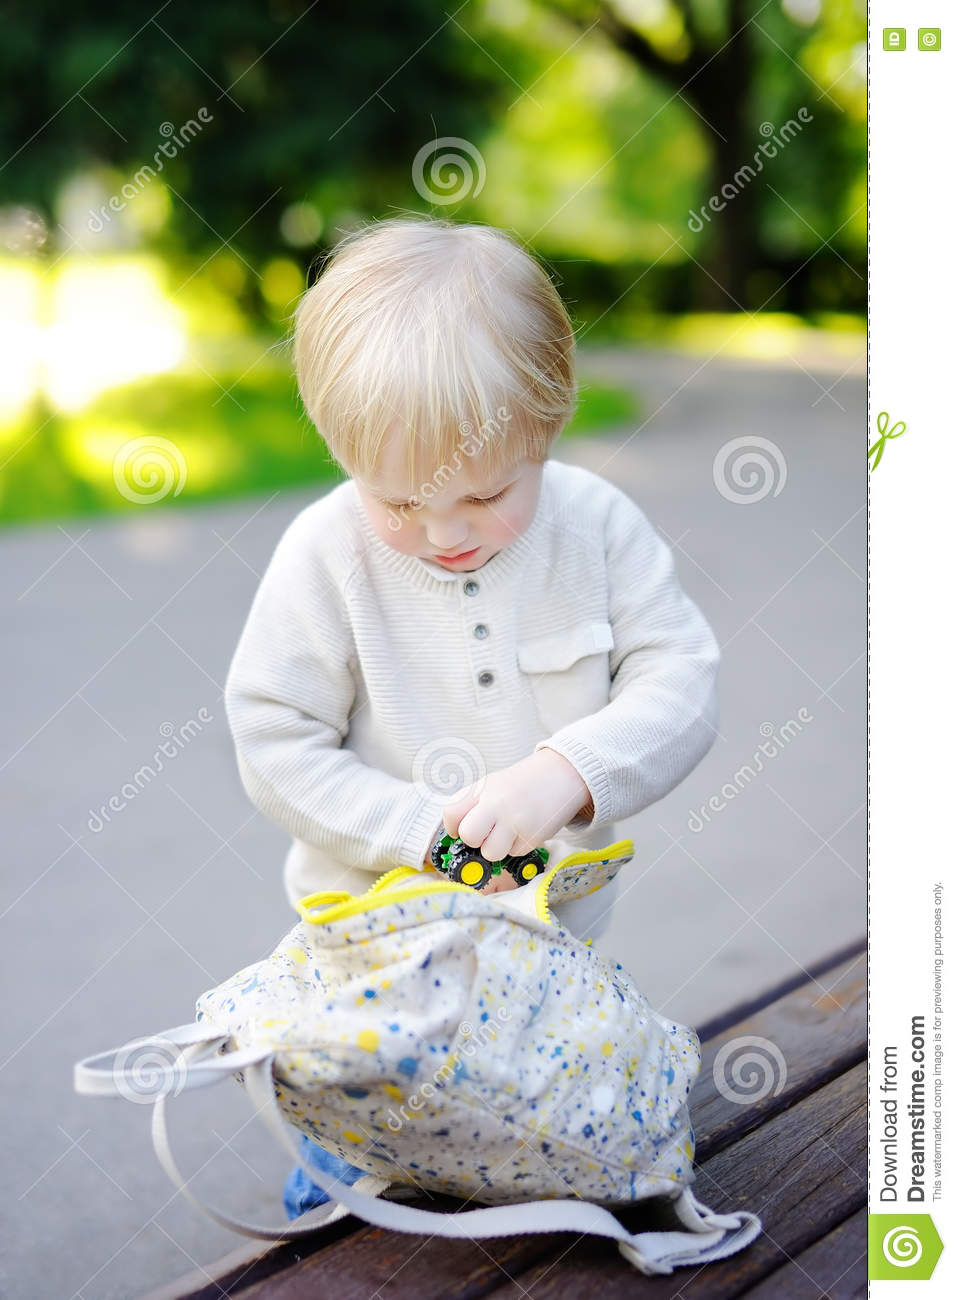 Toddler Boy Putting Toys In Backpack Stock Image - Image of